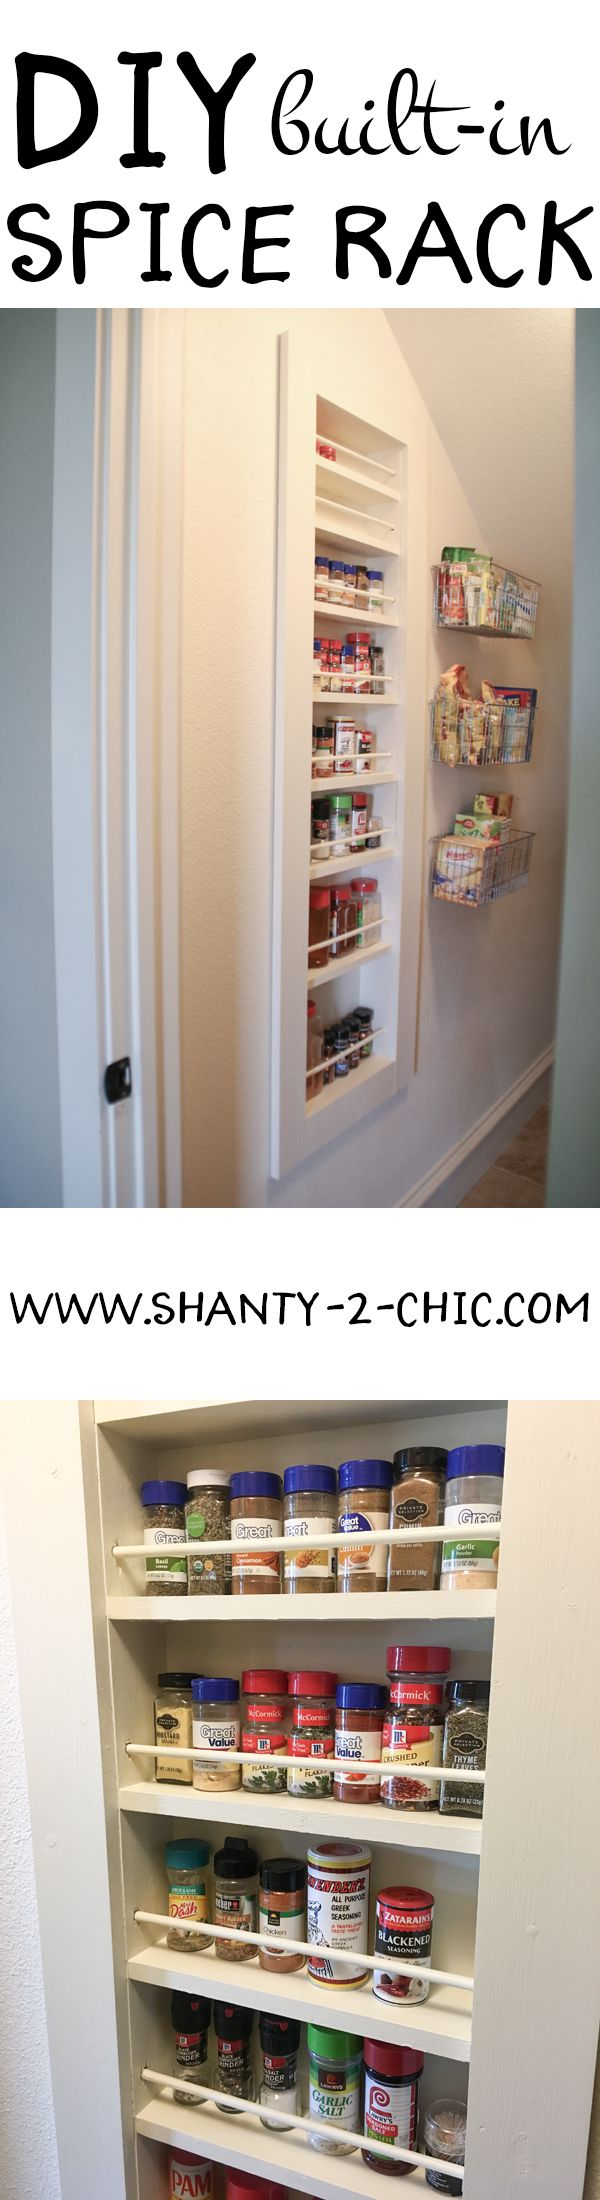 Diy Built In Spice Rack Free Plans And Tutorial Kitchen Wall